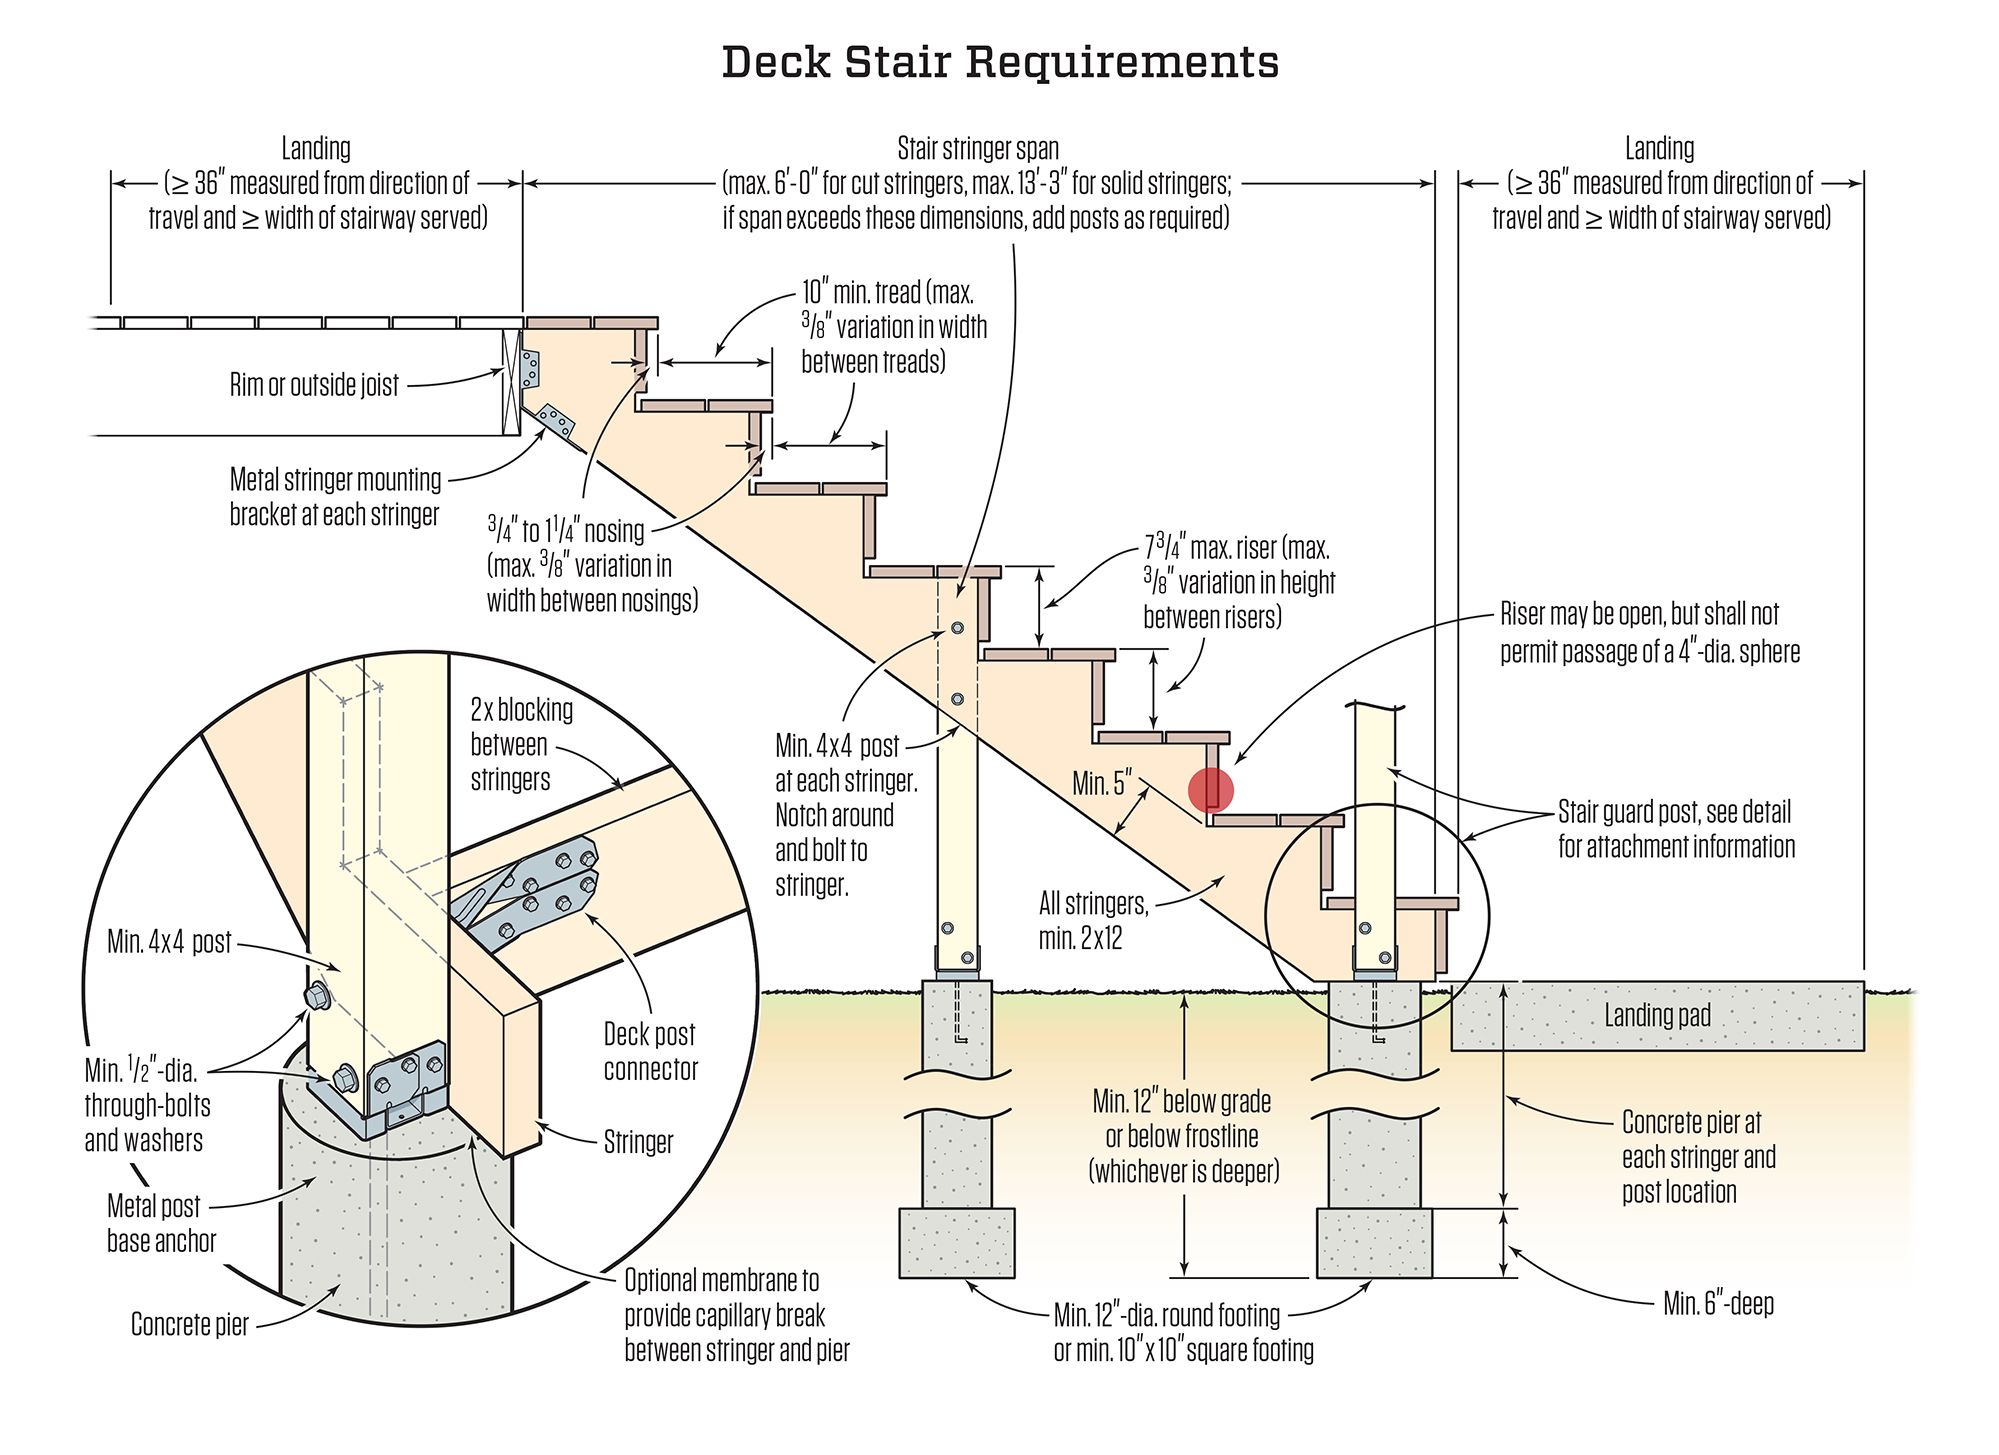 Tim Healey Shown Here Are DCA 6 Recommended Standards For Deck Stair  Stringers, Risers, Treads, And Landings, And The Components That Support  Them.